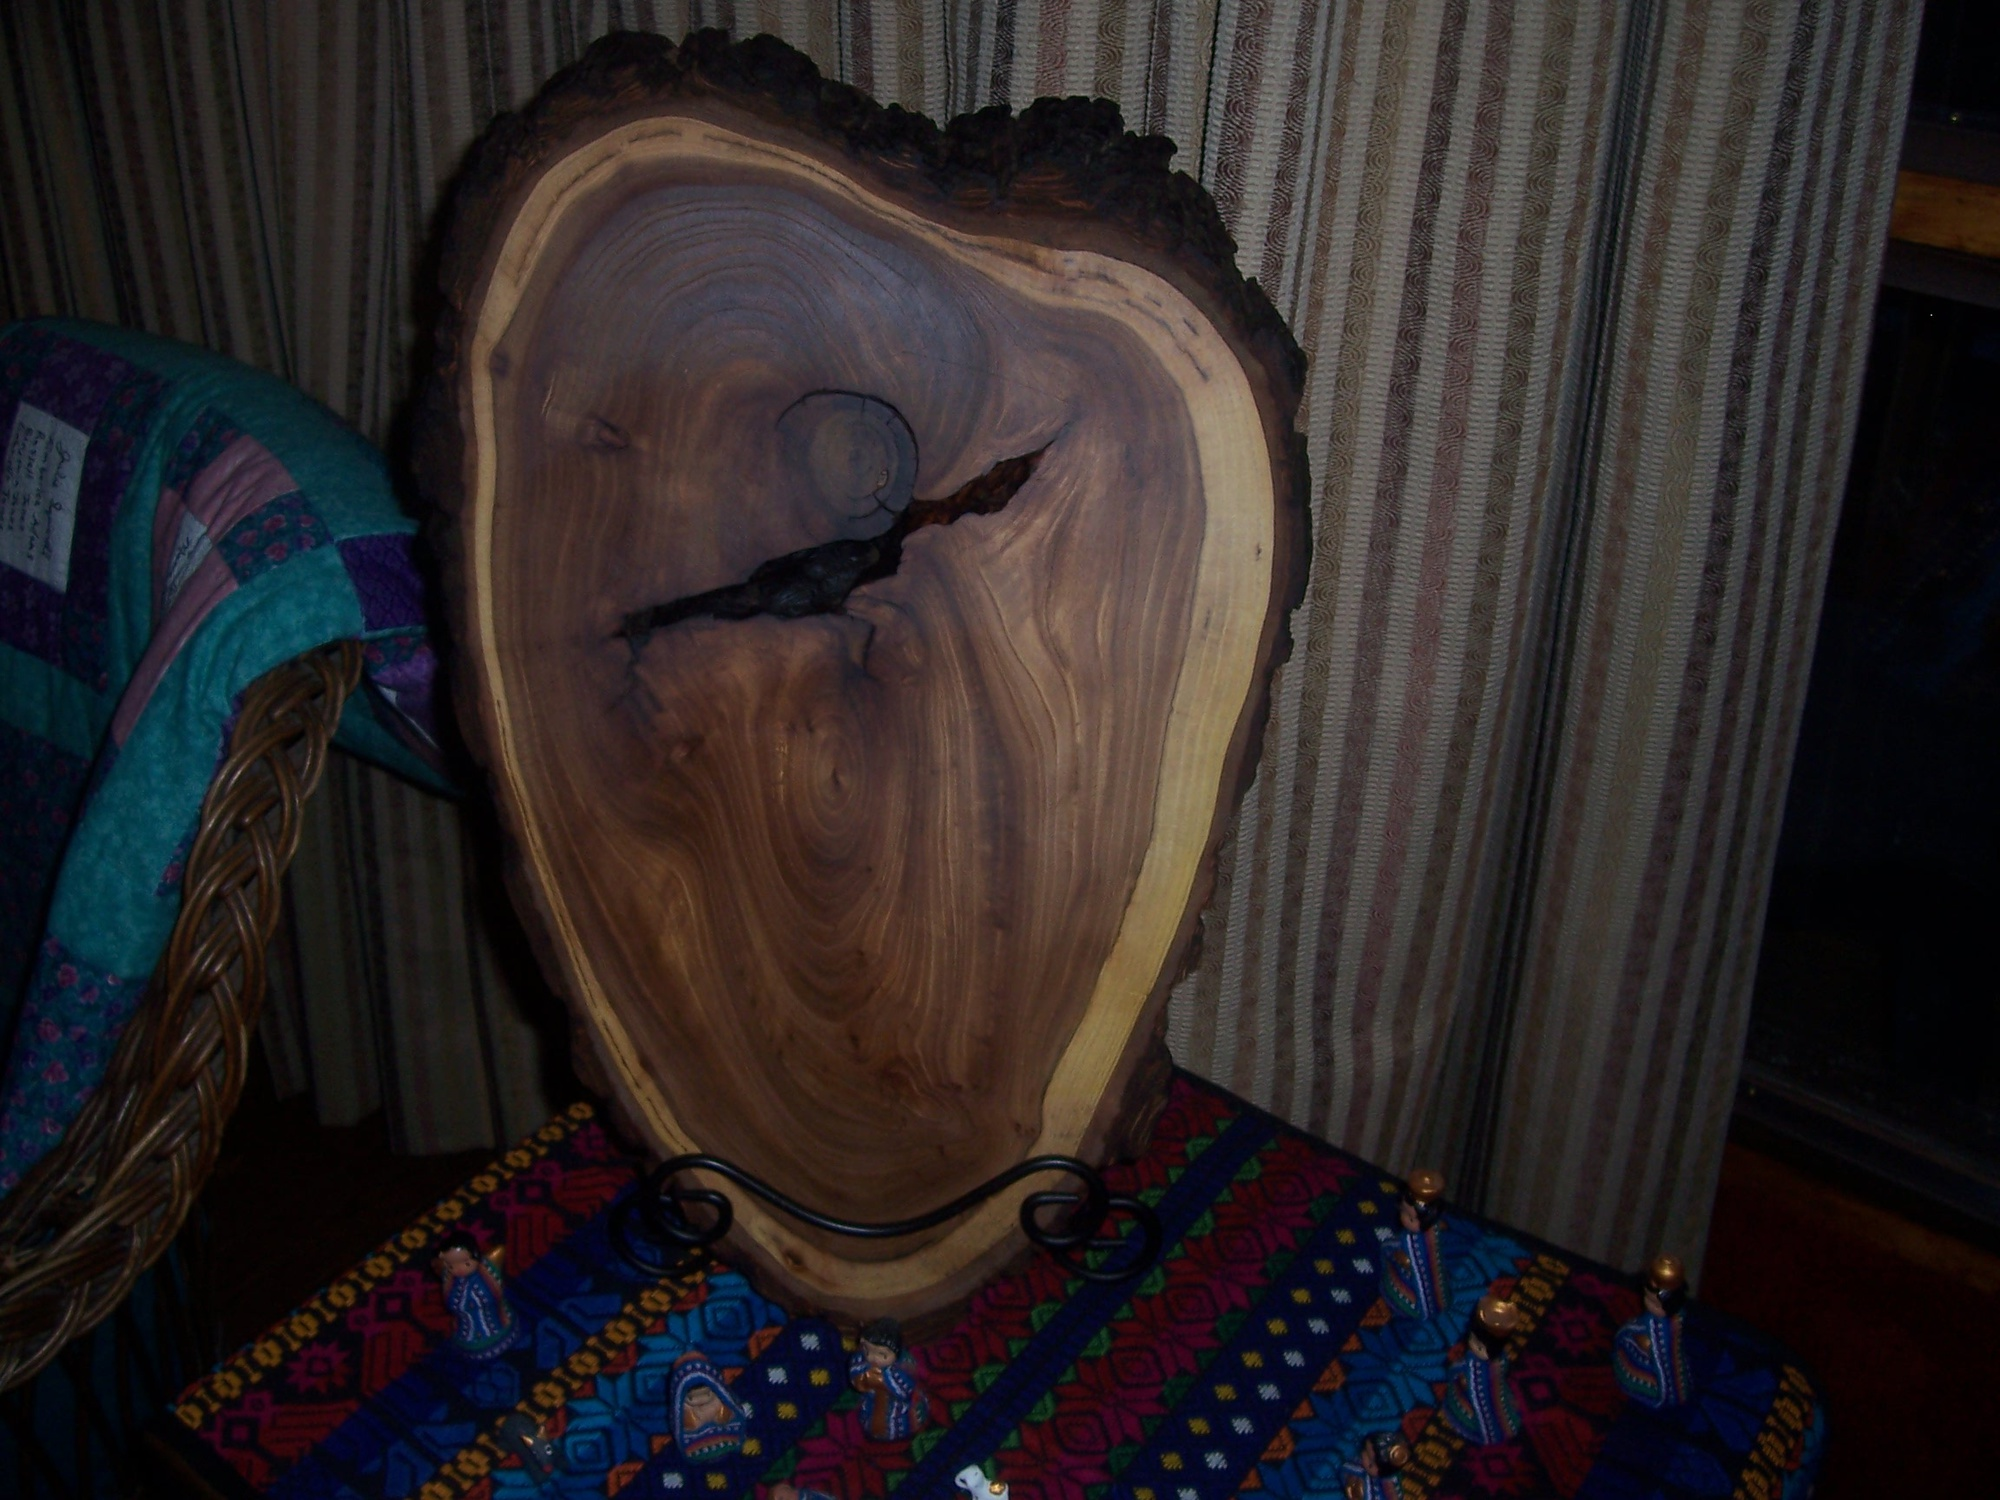 Seeing an Angel in wood-100_6922.jpg